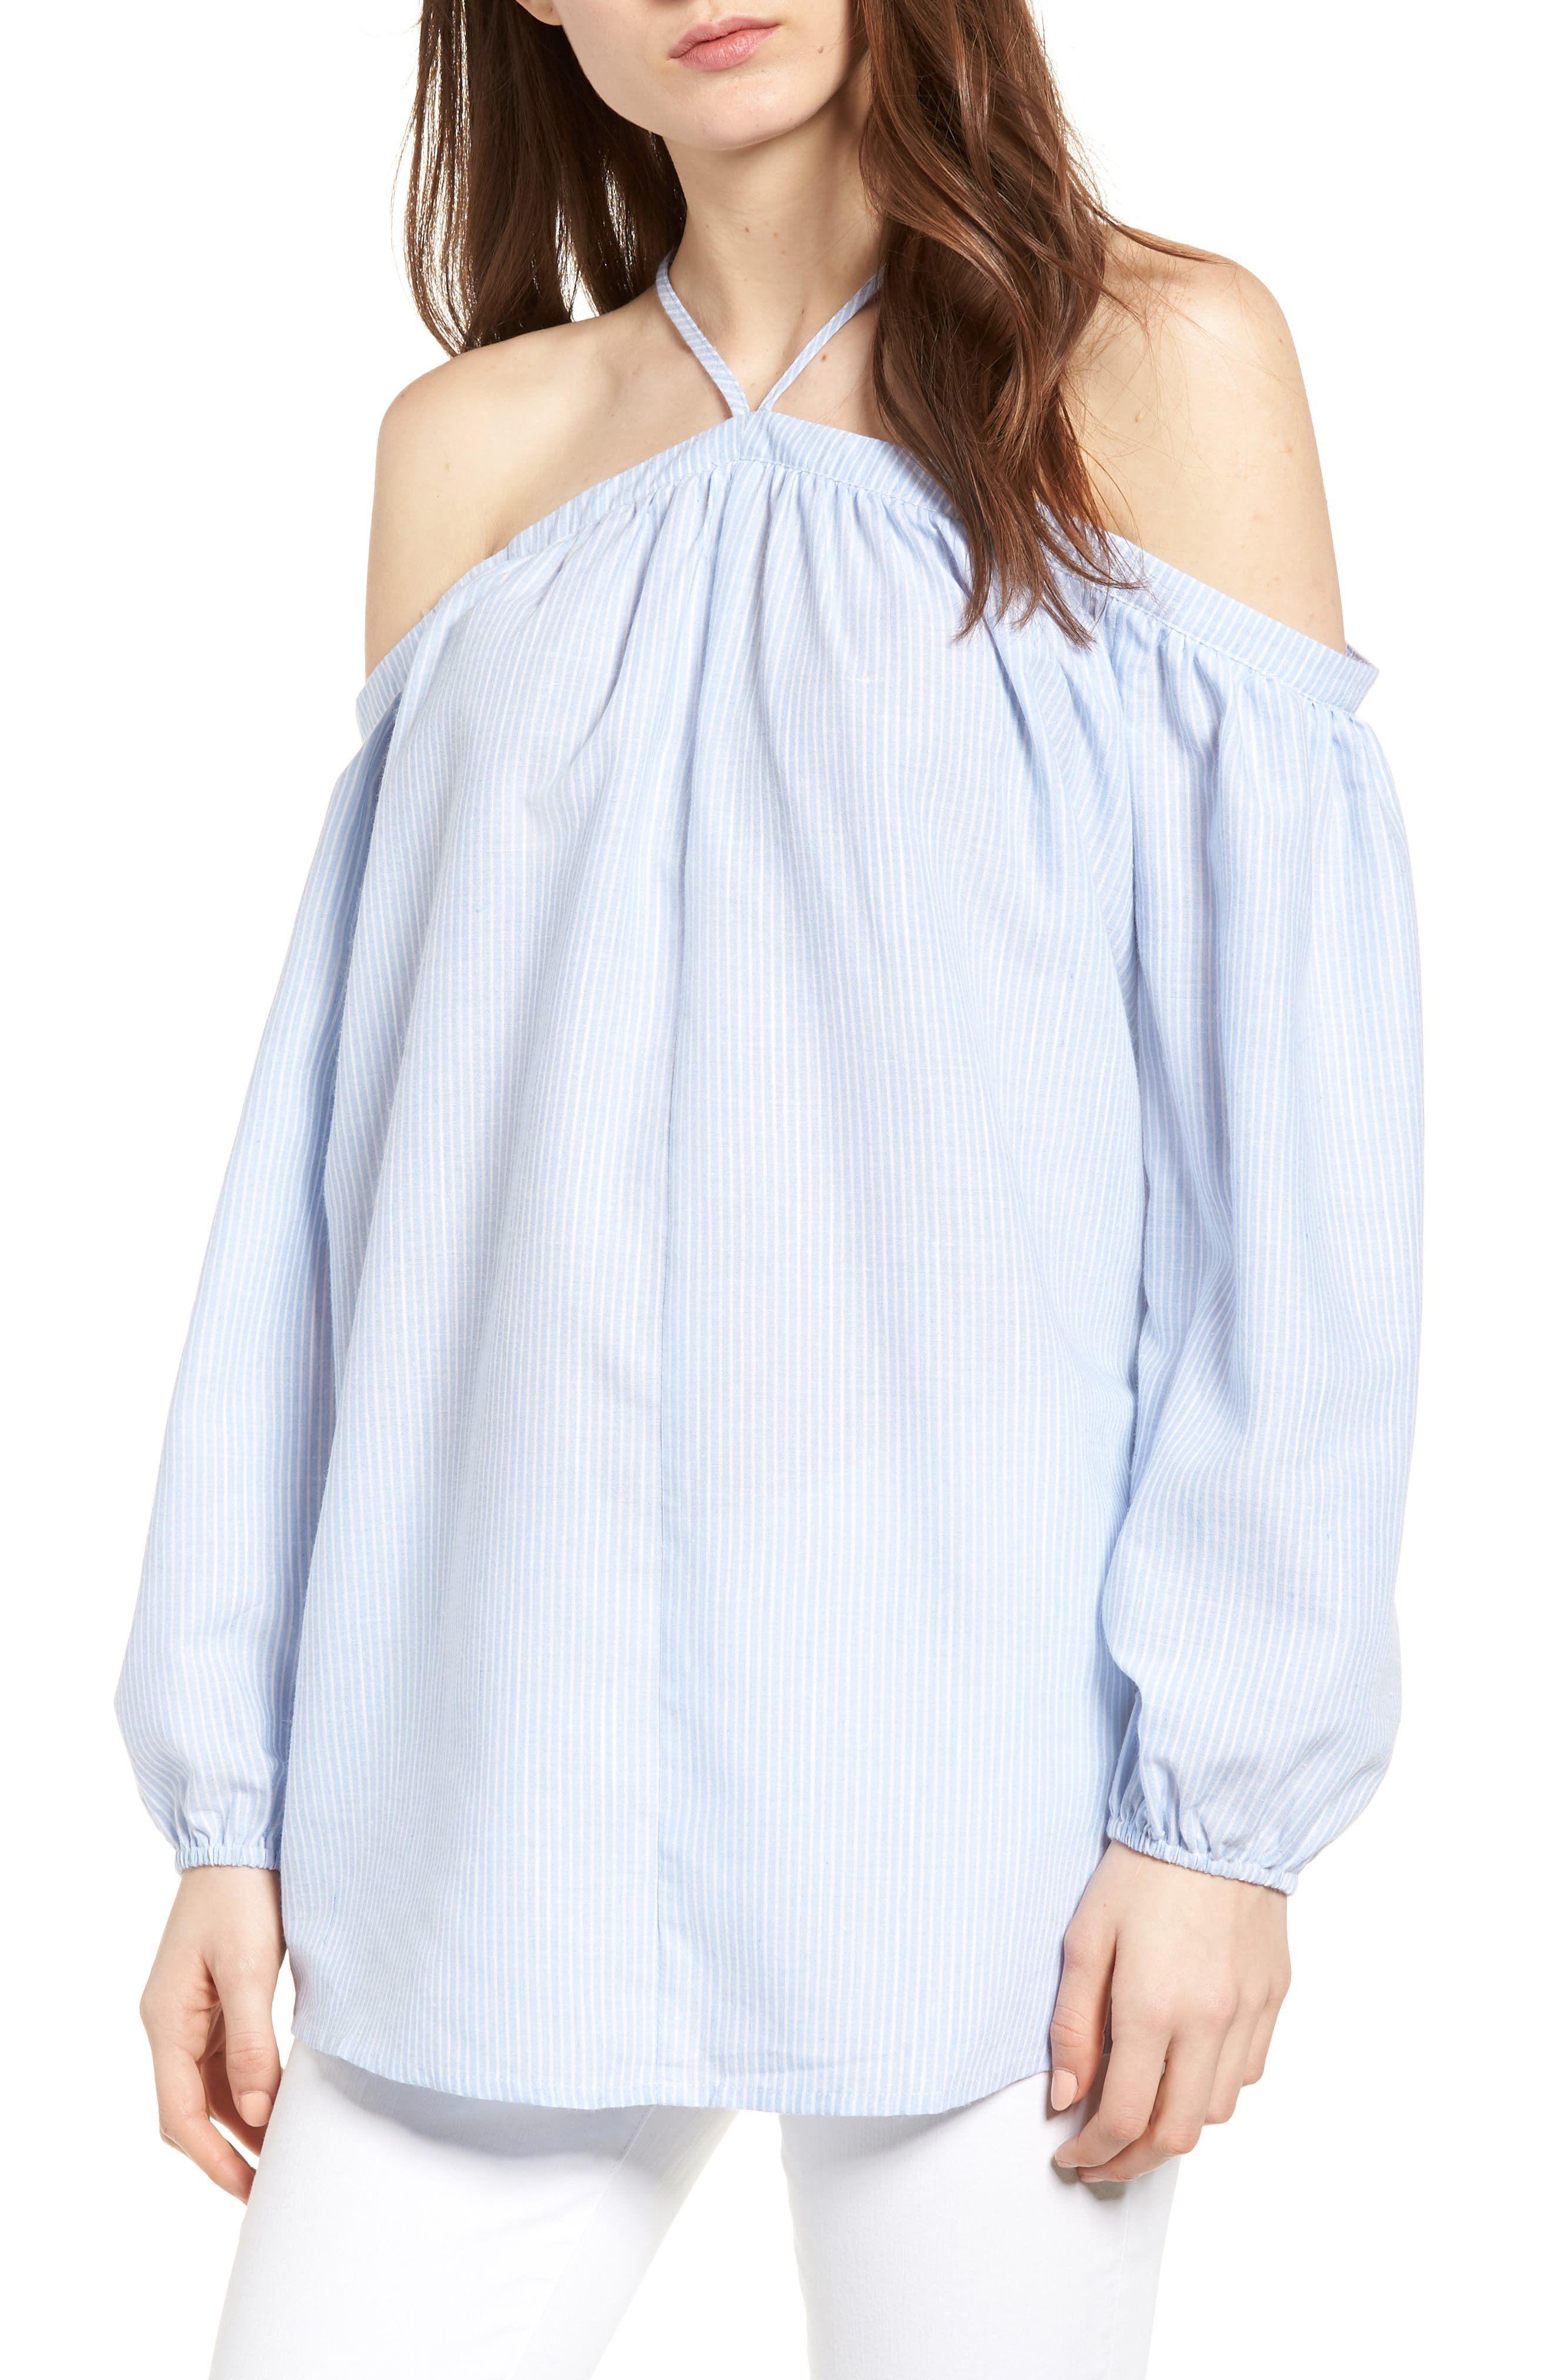 Bishop + Young Ana Stripe Off the Shoulder Top,                         Main,                         color, Blue White Stripe